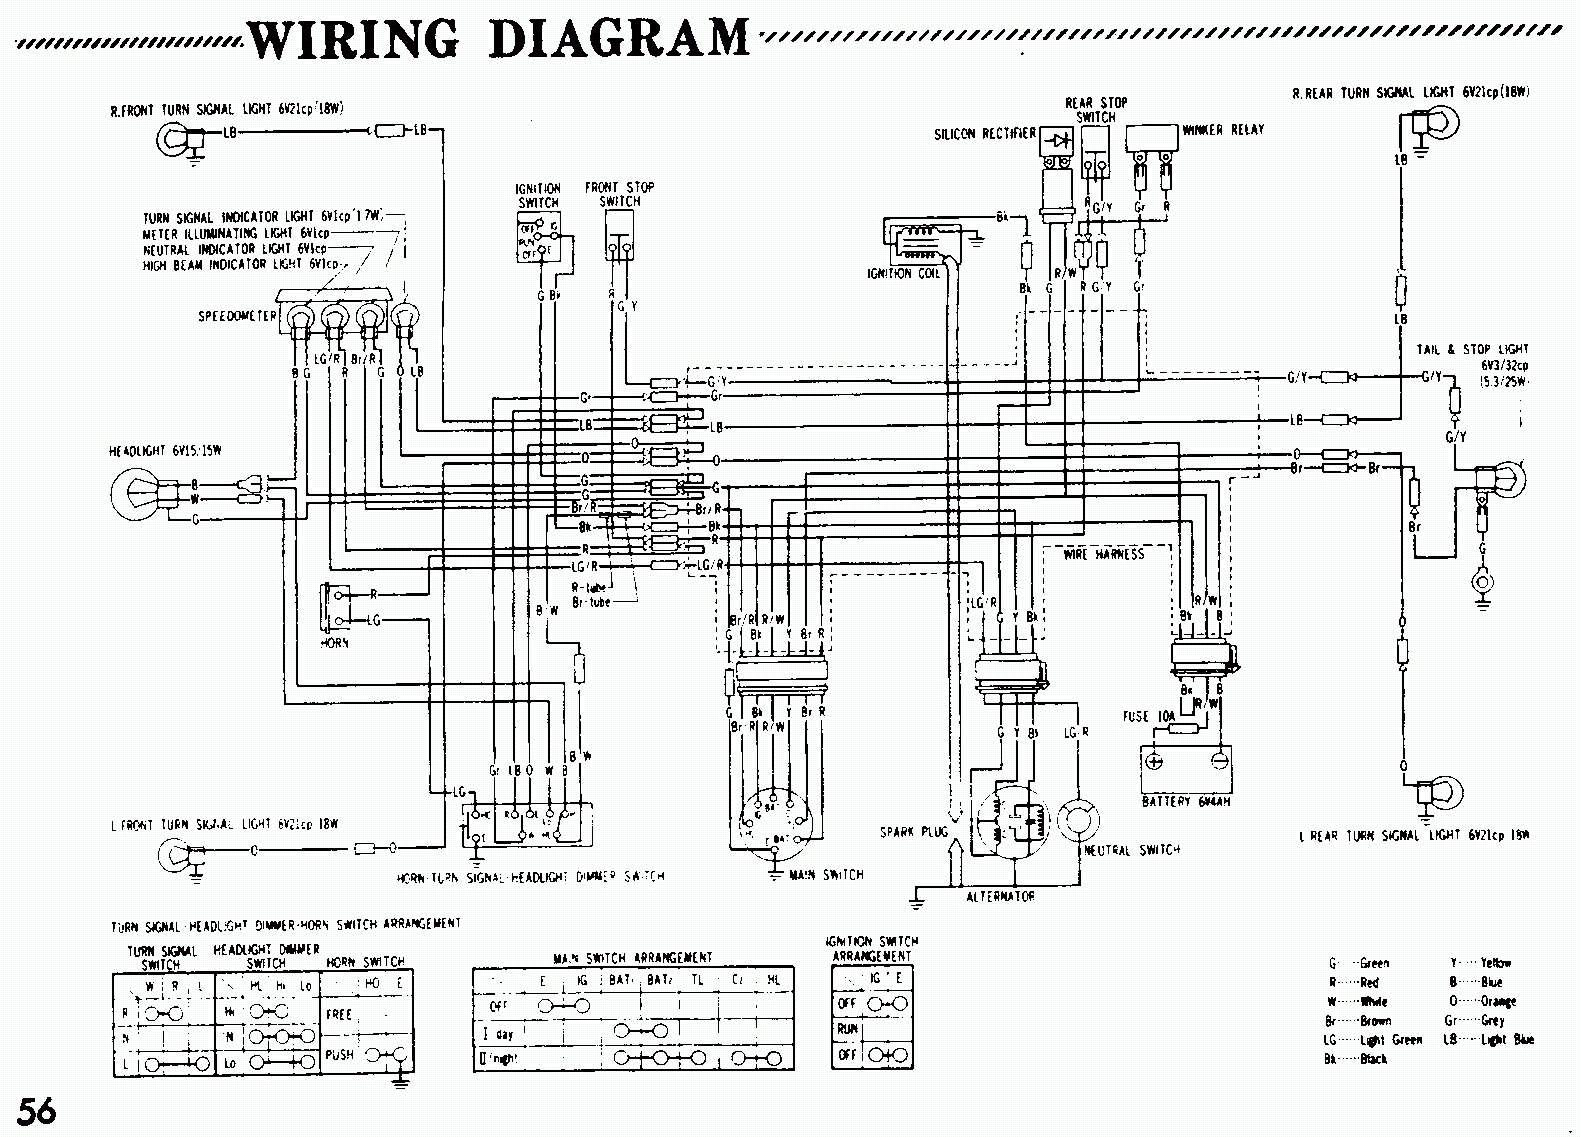 Tbolt usa tech database tbolt usa llc a high quality ct70 and clone engine wiring diagram is available at httpparduebrothersproducthonda ct70 lifan clone engine 12 volt wiring diagram asfbconference2016 Image collections